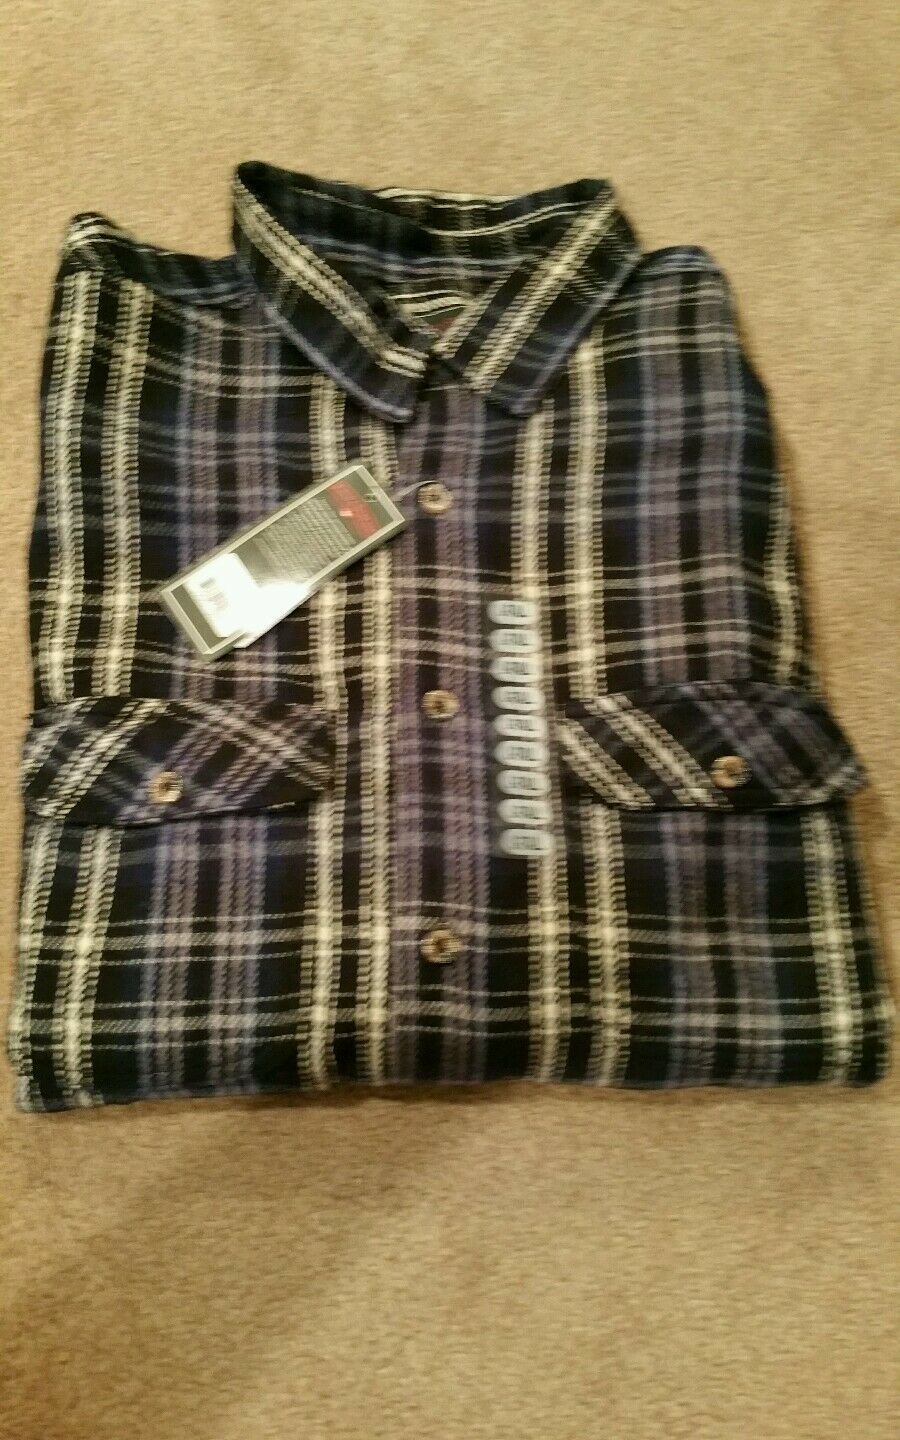 Field & Stream 1871 navy heavy weight  plaid button down flannel shirt SZ. L TALL  new exclusive high-end